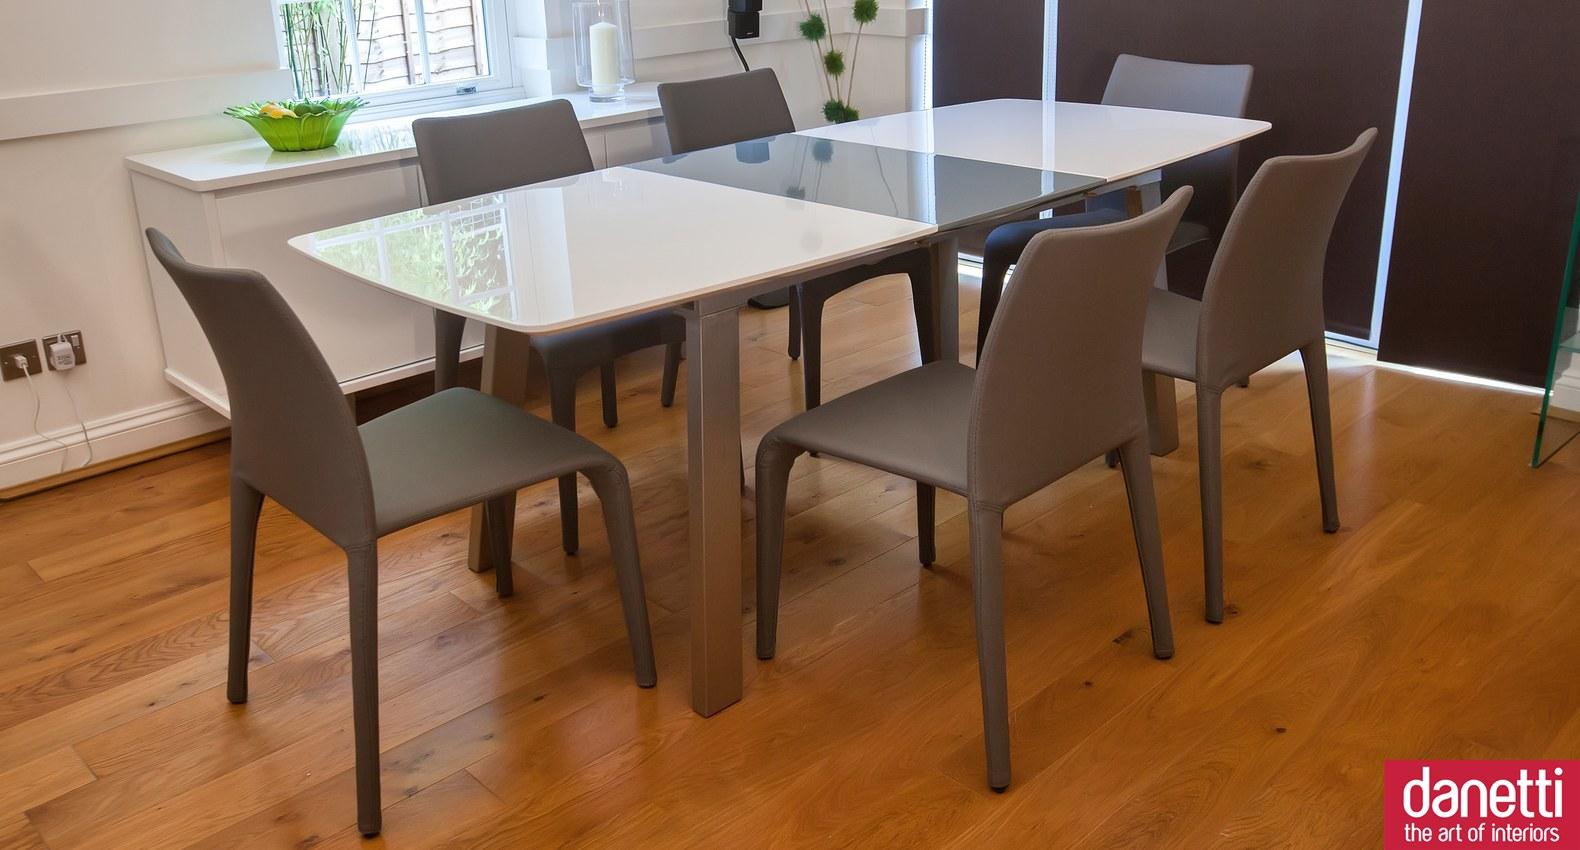 expandable dining table set in grey with rectangular table and chairs on wooden floor for dining room inspiration